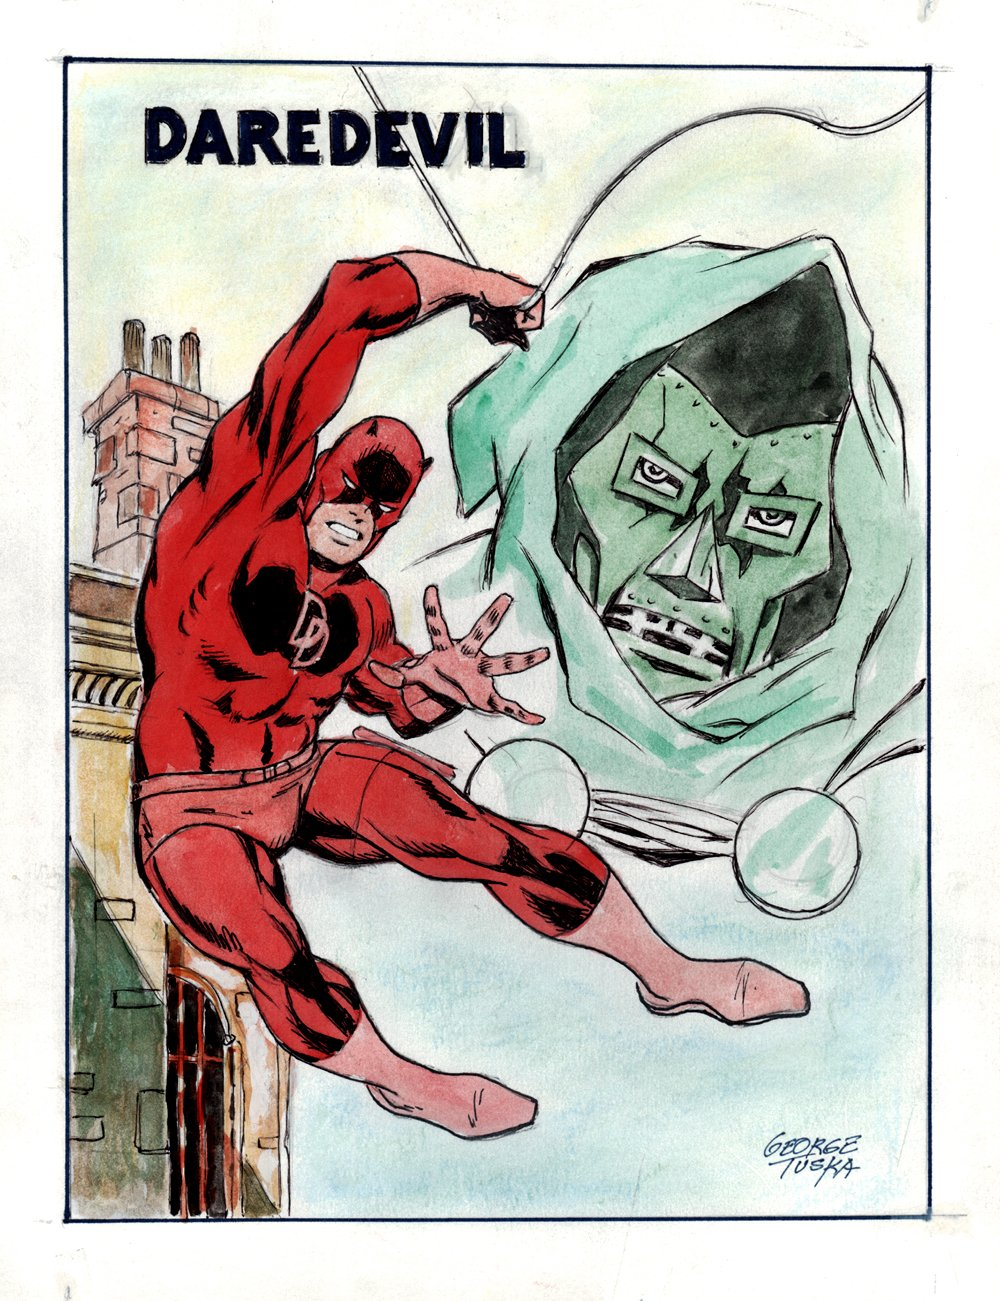 Daredevil & Dr. Doom Penciled, Inked, & Hand Colored Illustration